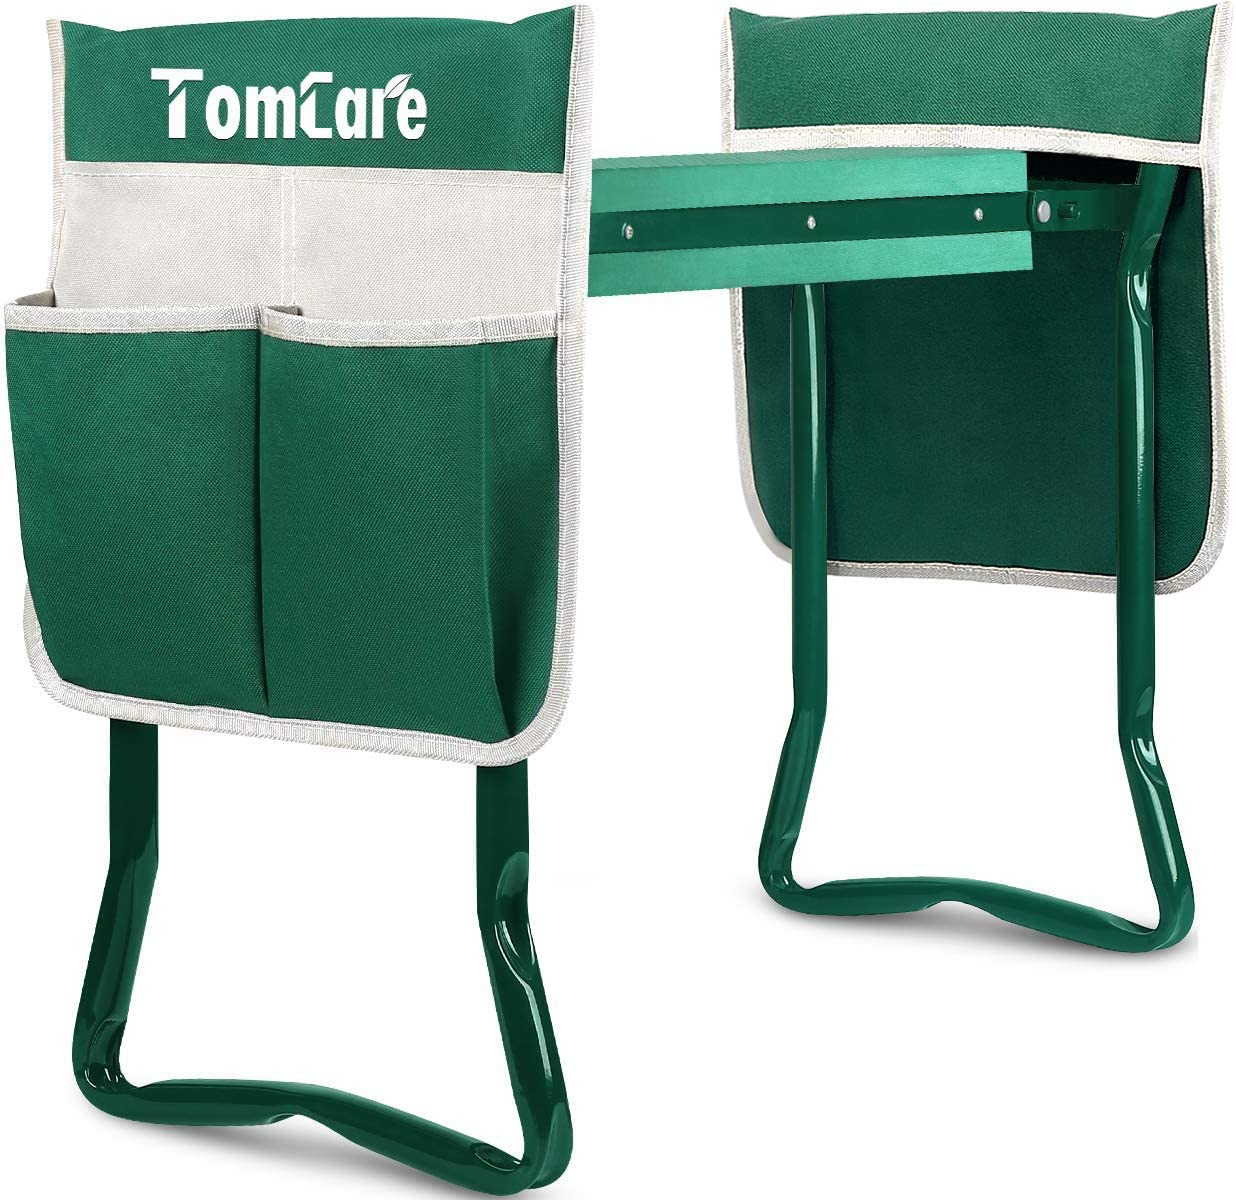 TomCare Garden Kneeler Seat with 2 Large Tool Pouches